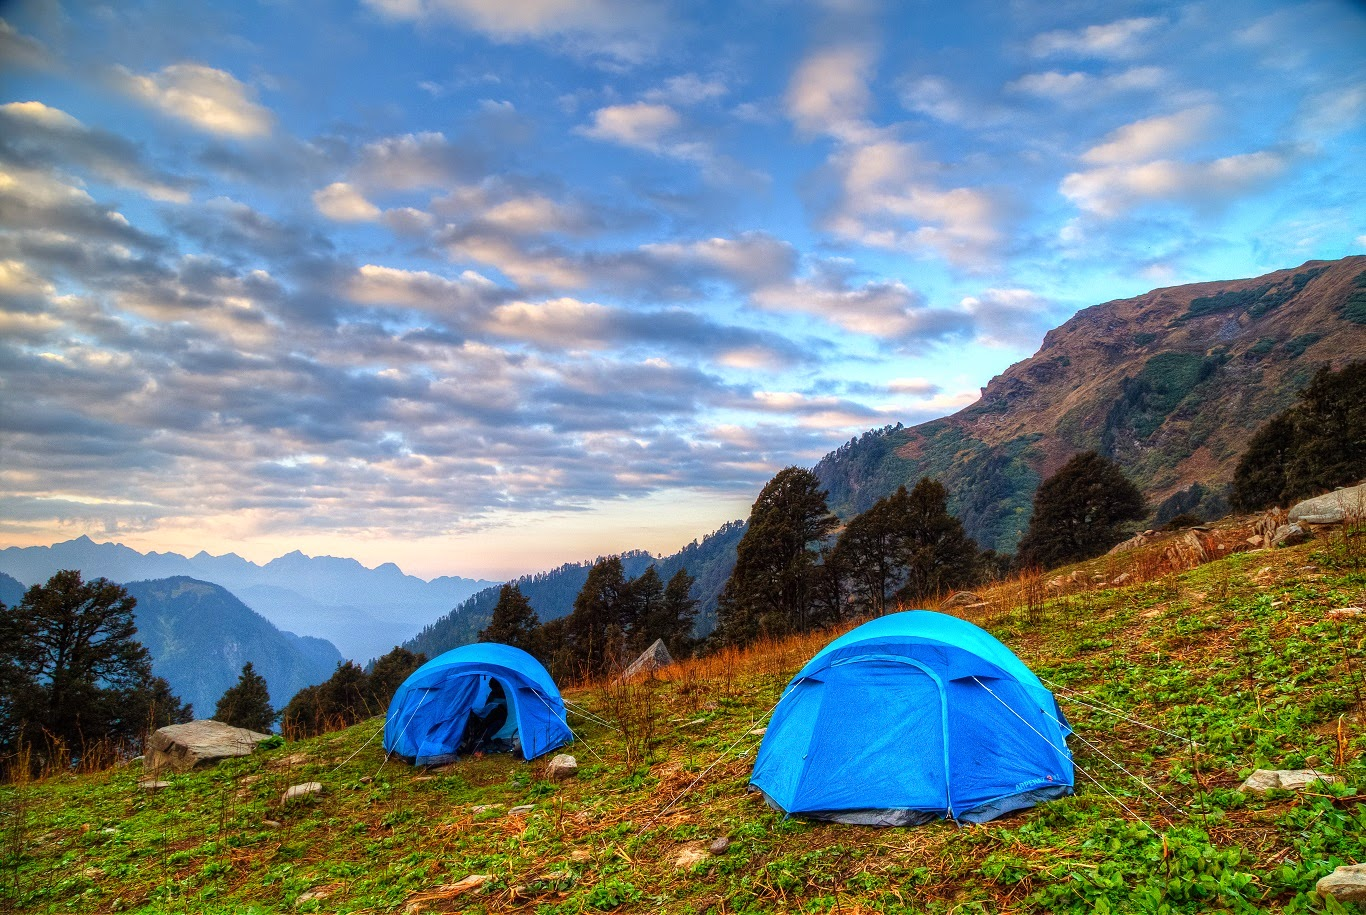 Some moments of truth, Some disappearing myths - A Trek to Chandrakhani Pass & Malana